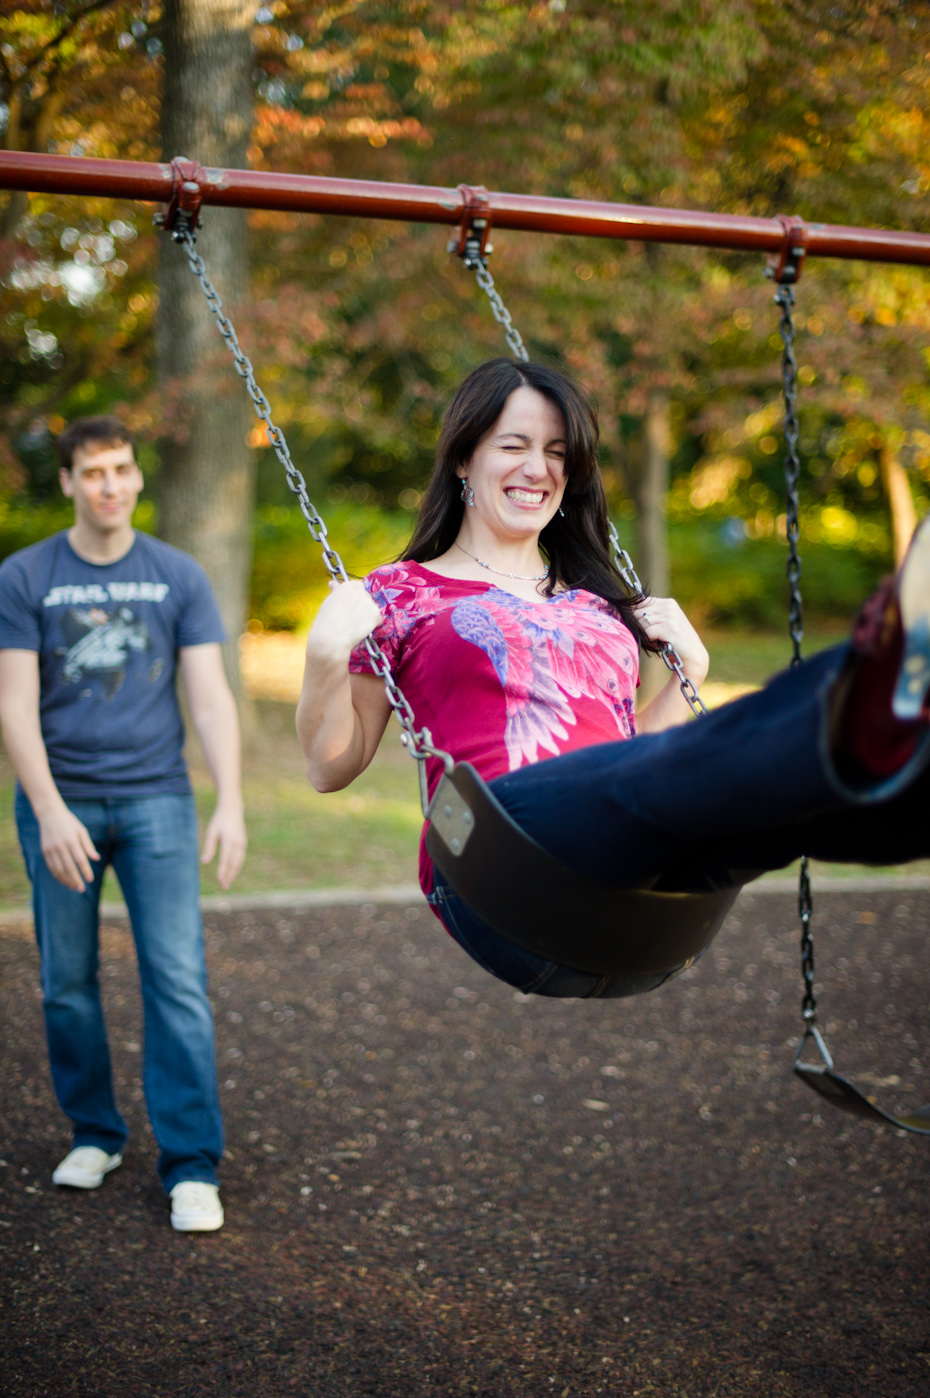 Engagement photo on swing